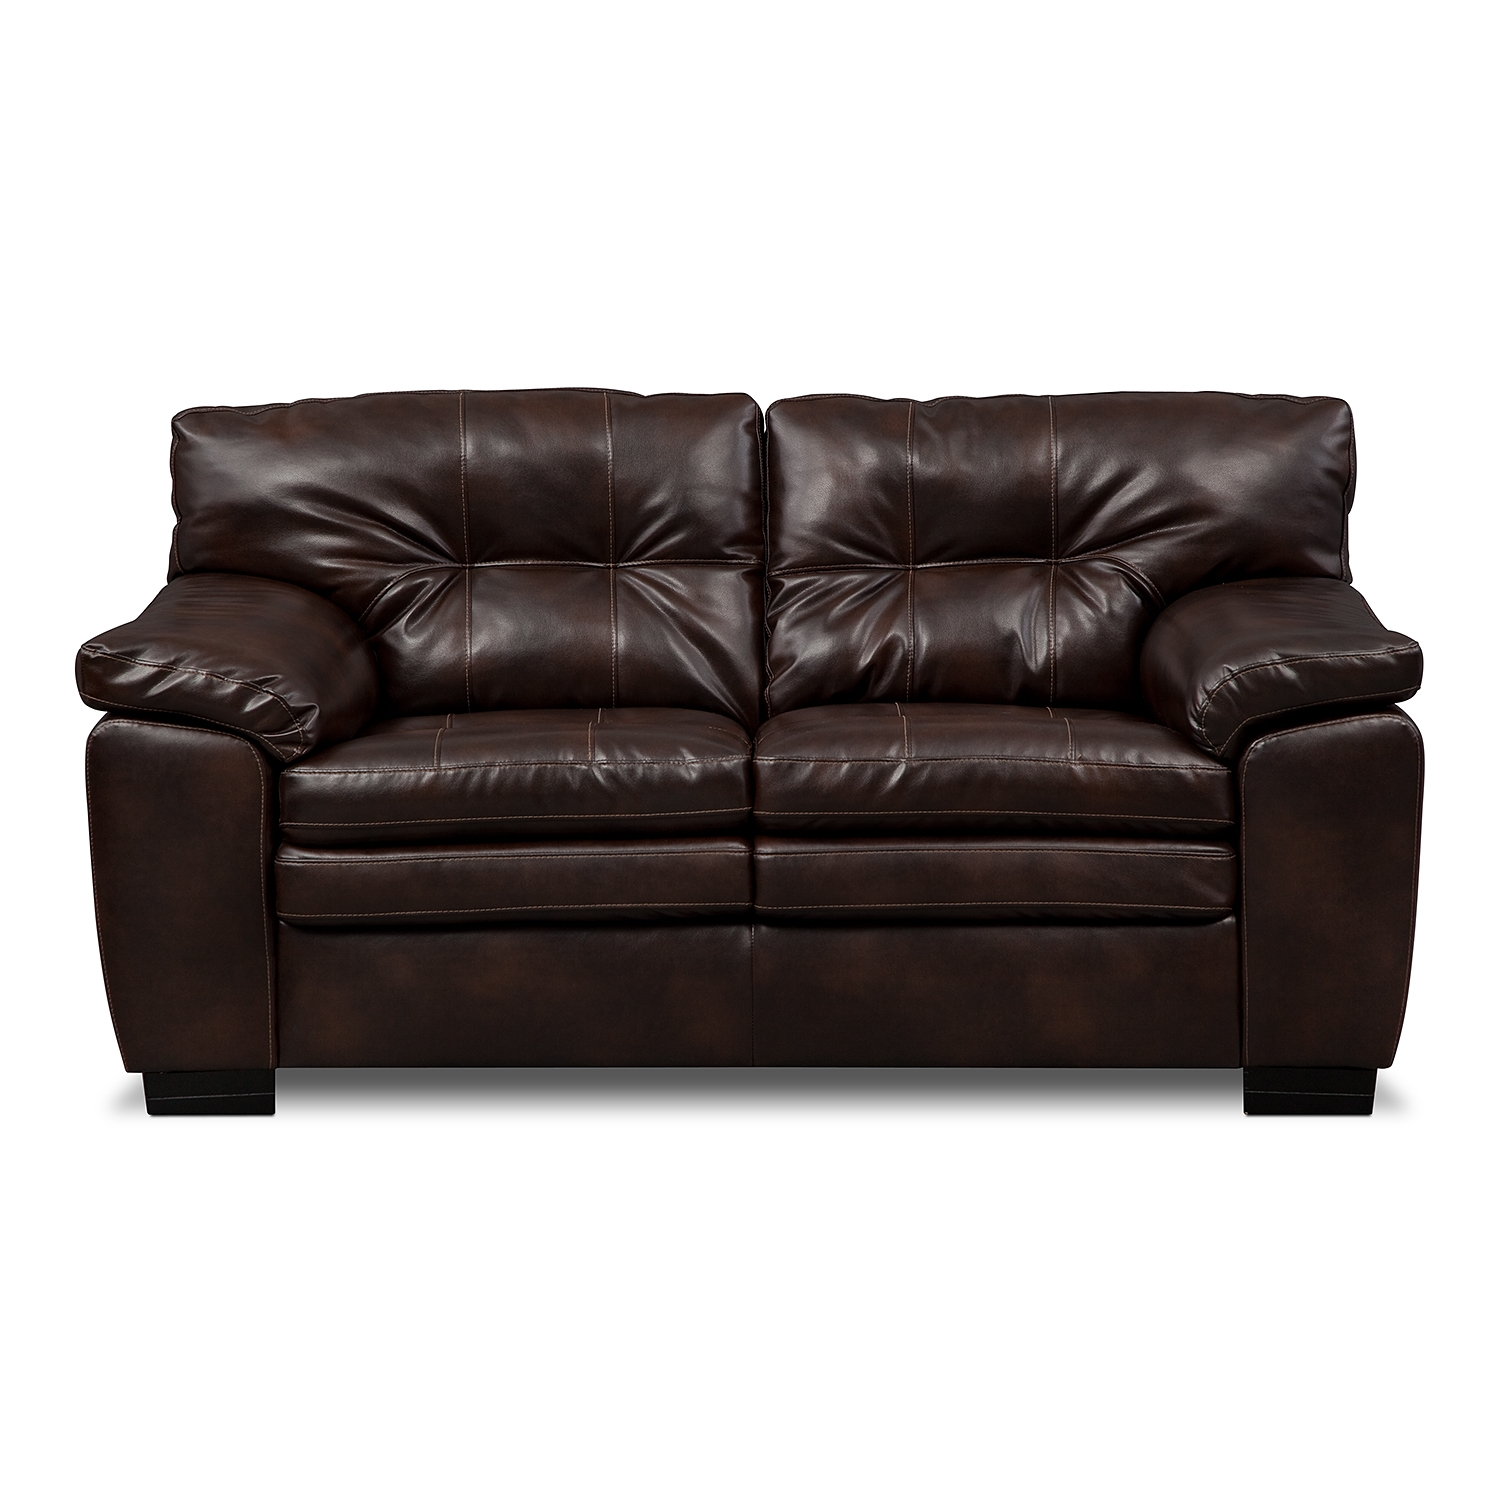 Convertible loveseat sofa bed with chaise couch sofa Best loveseats